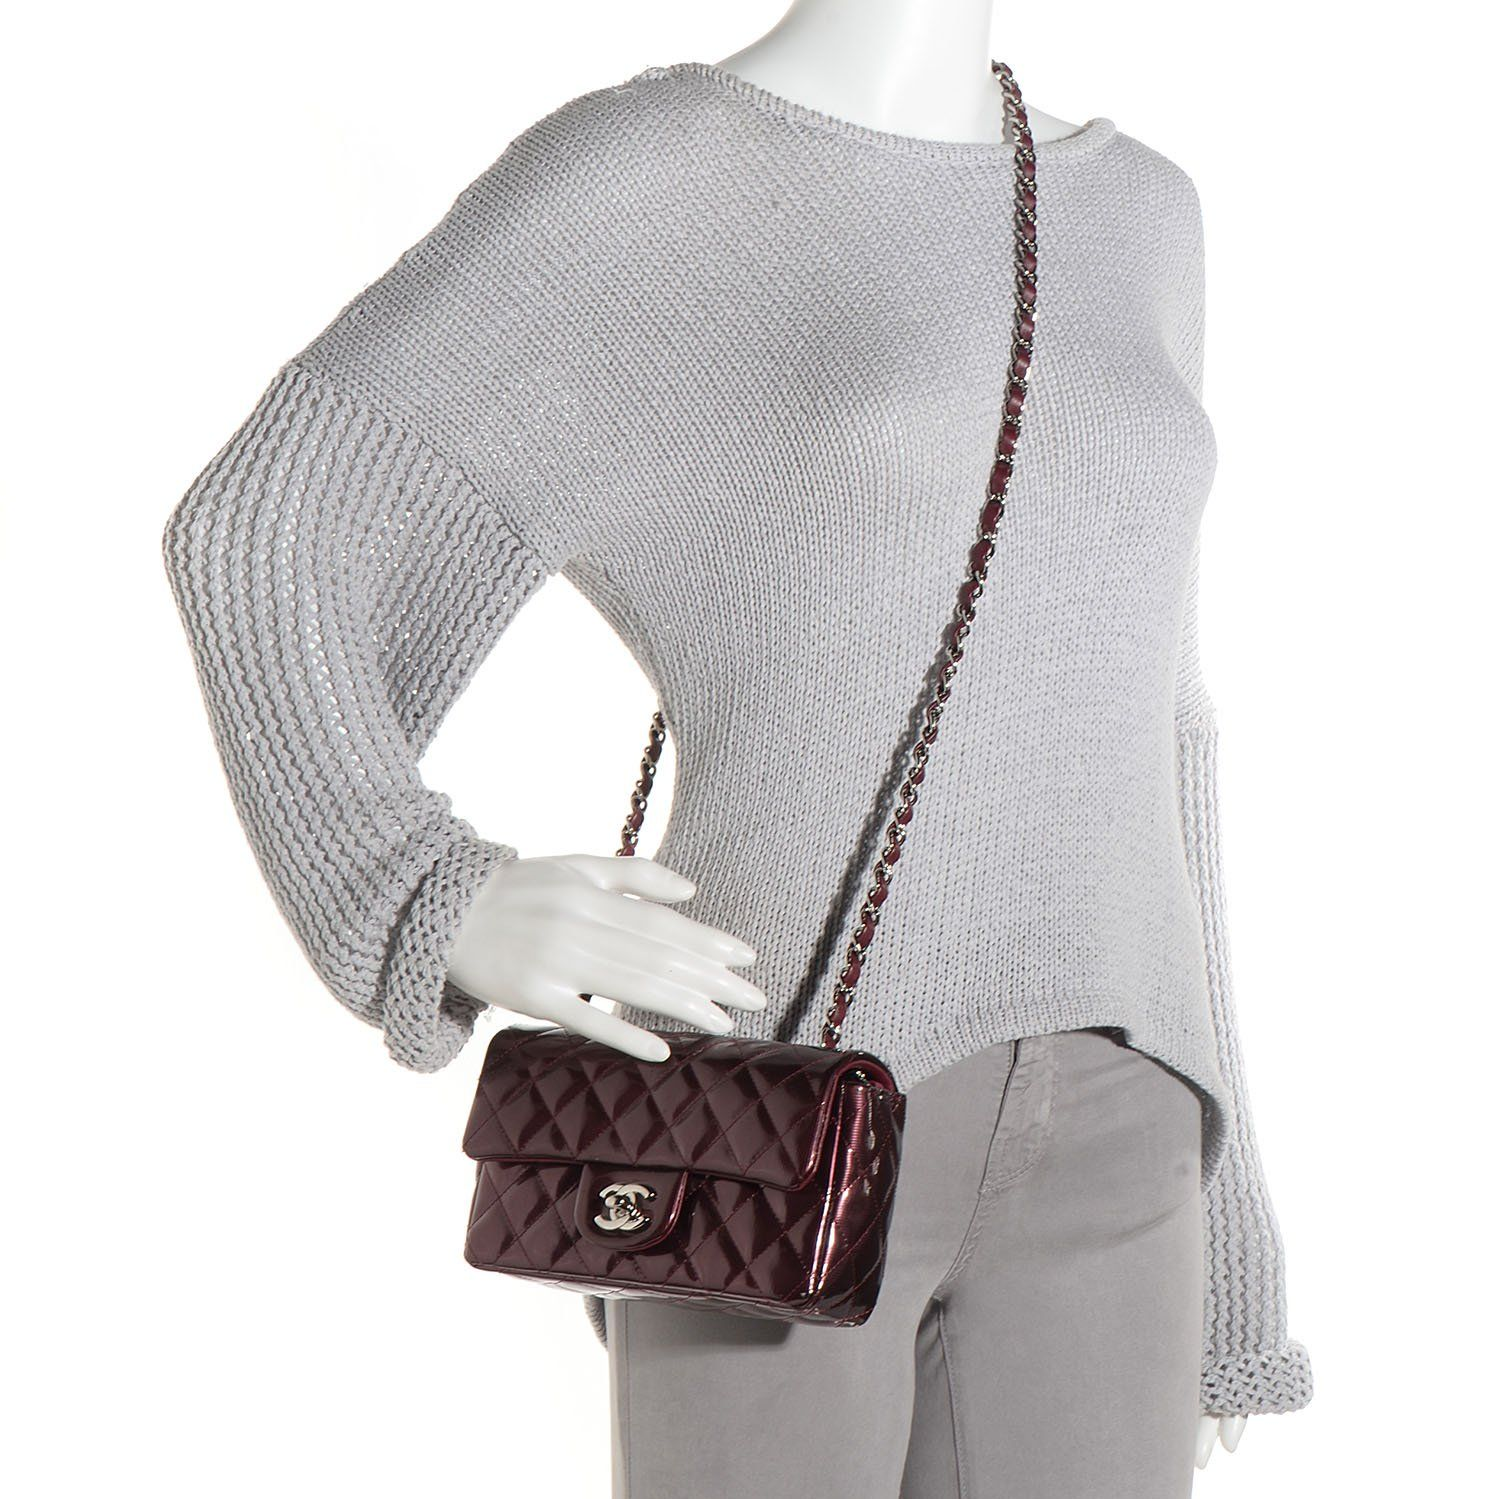 58ca7ca11424 This is an authentic CHANEL Striated Patent Quilted Rectangular Mini Flap  in Burgundy. This stunning